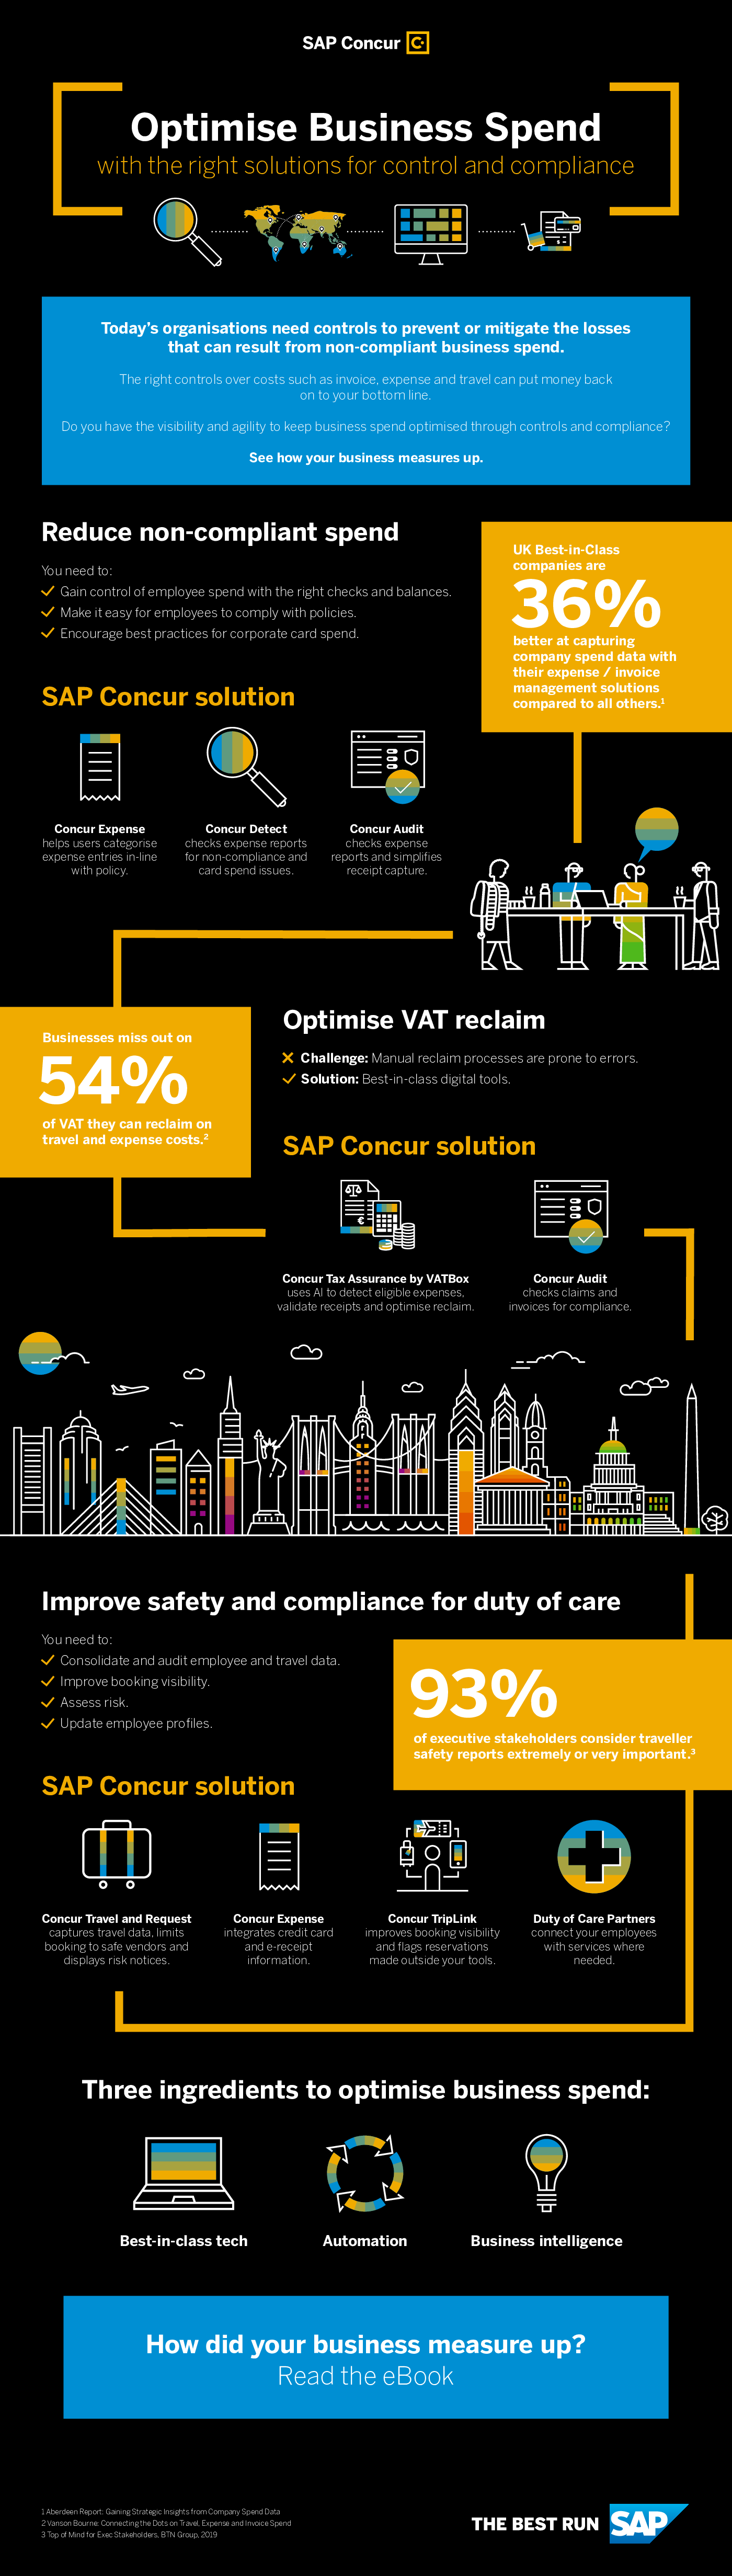 Thumb original control and compliance campaign infographic q2 2021 0